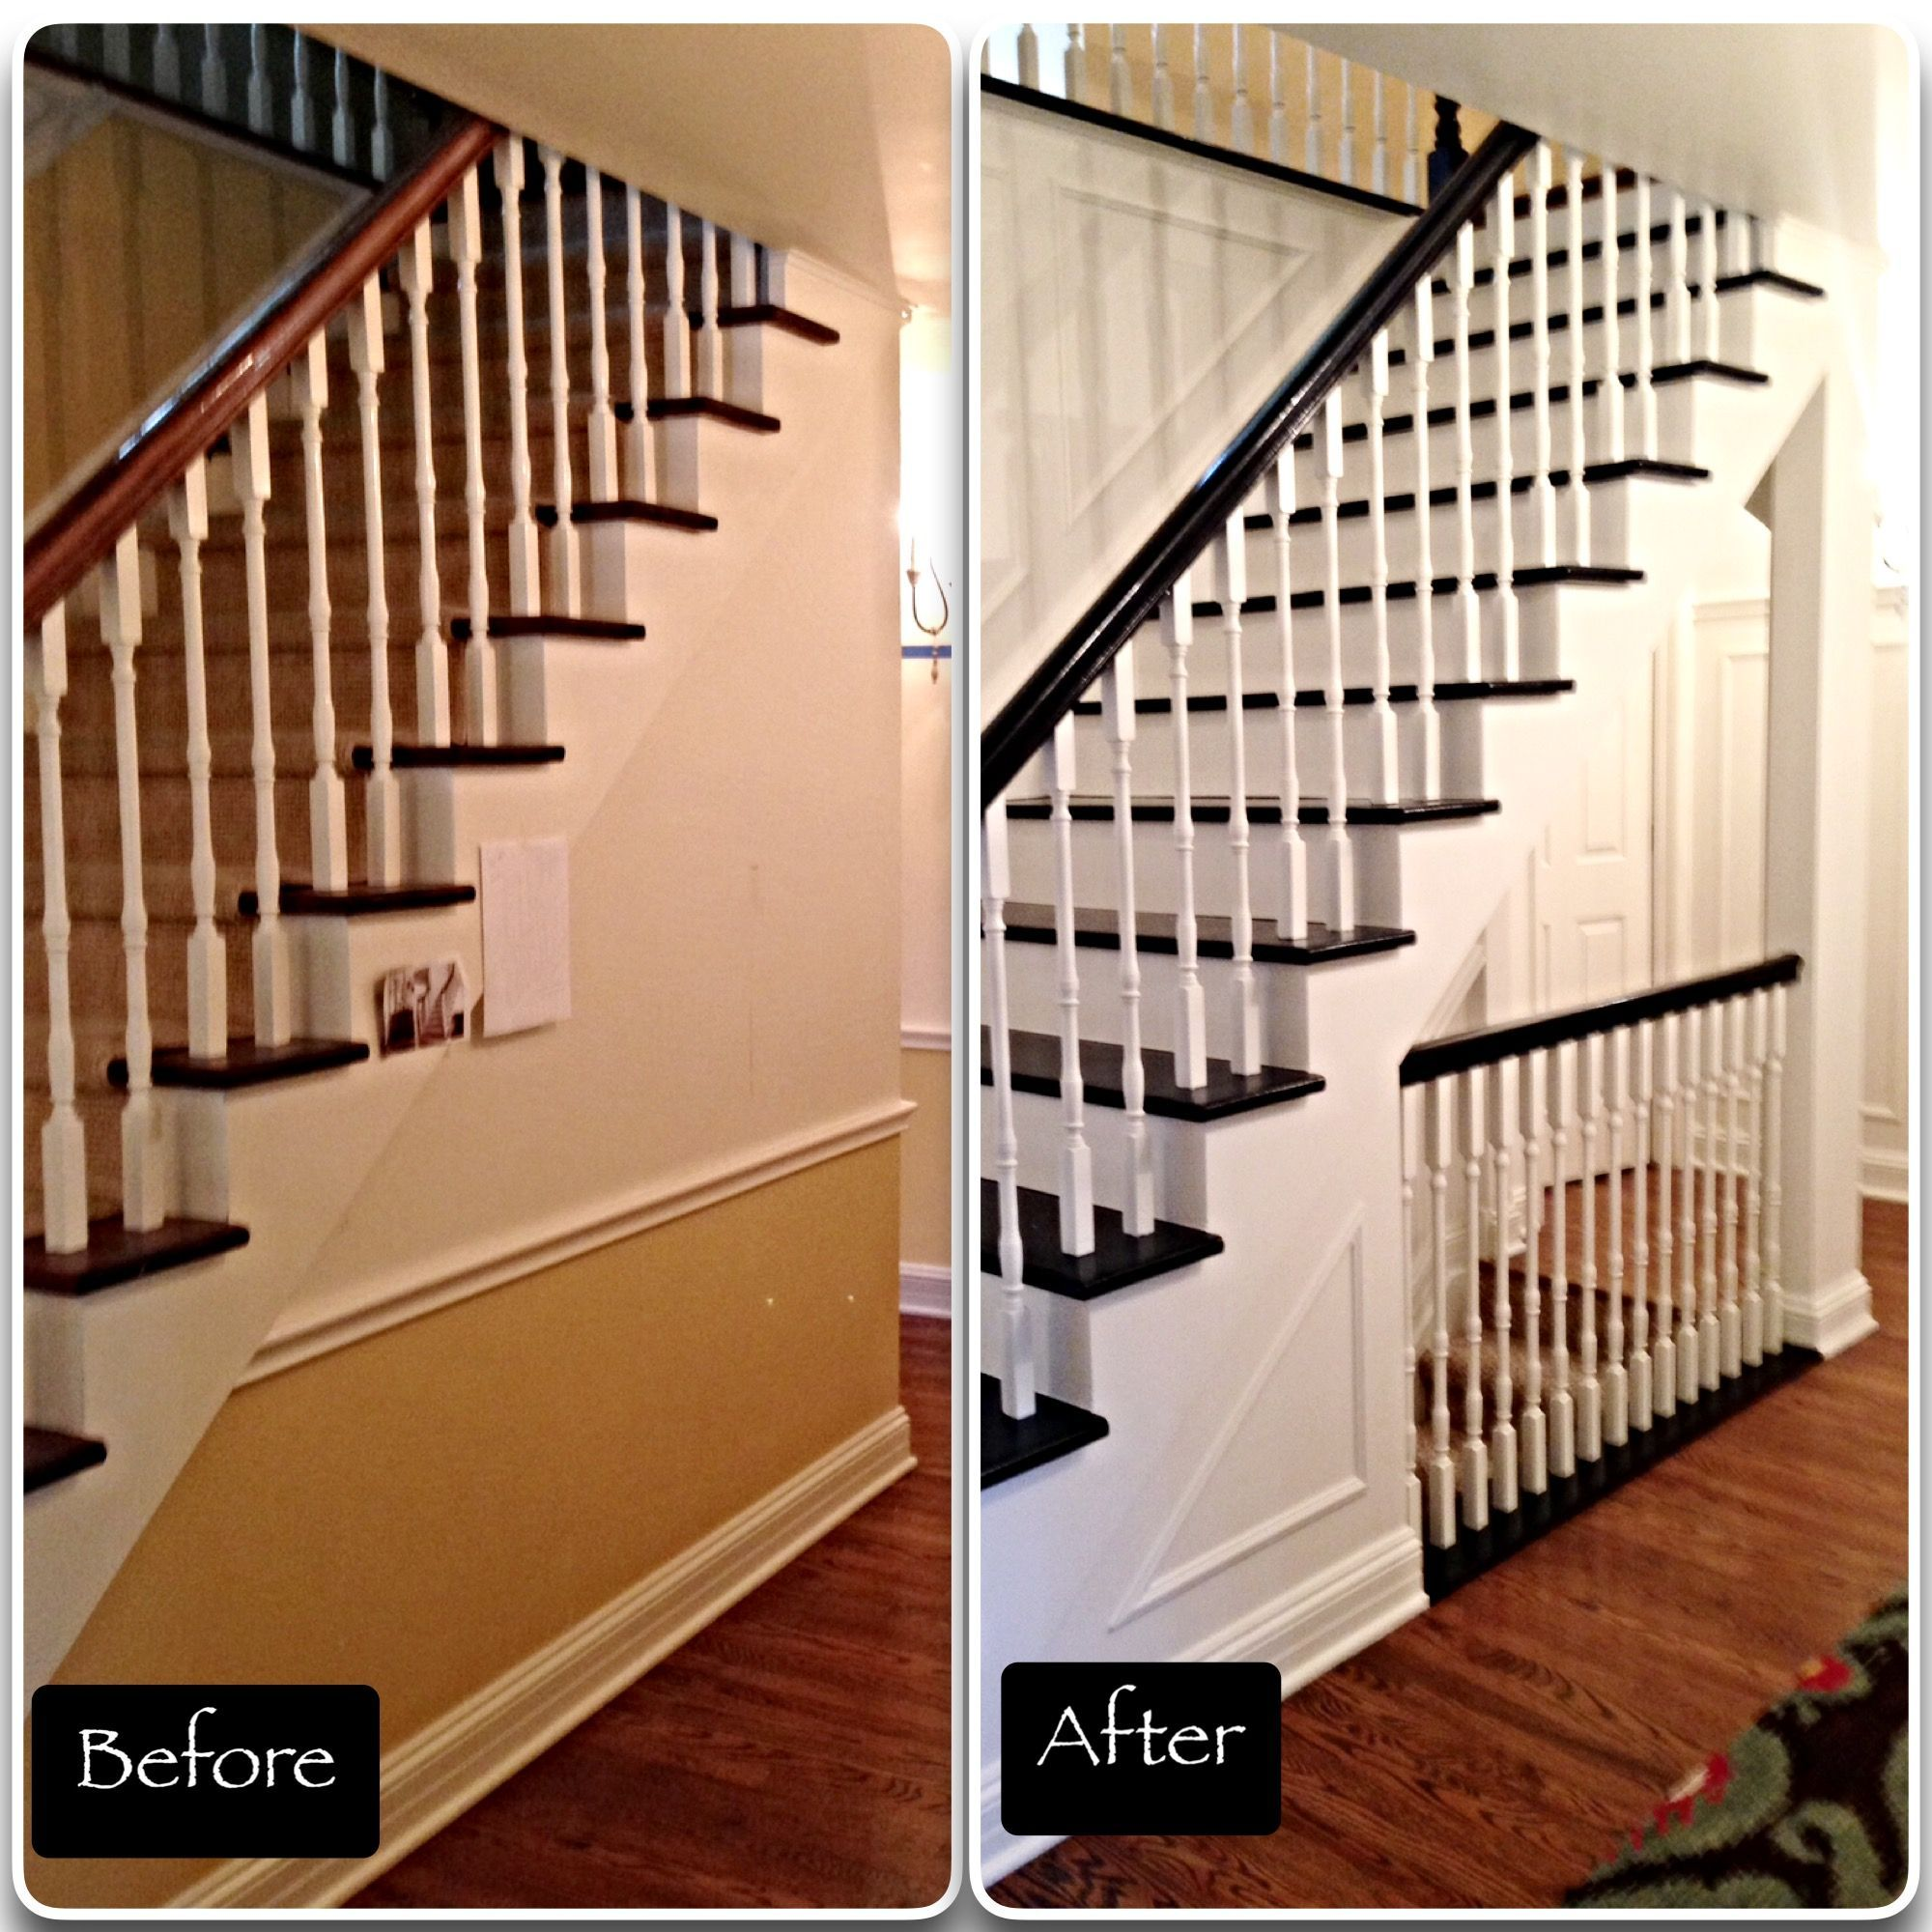 39 Inspiring Painted Stairs Ideas Paintedstairsideas Staircase Design Stairs Design Stairway Decorating Staircase Remodel Basement Staircase Stair Remodel